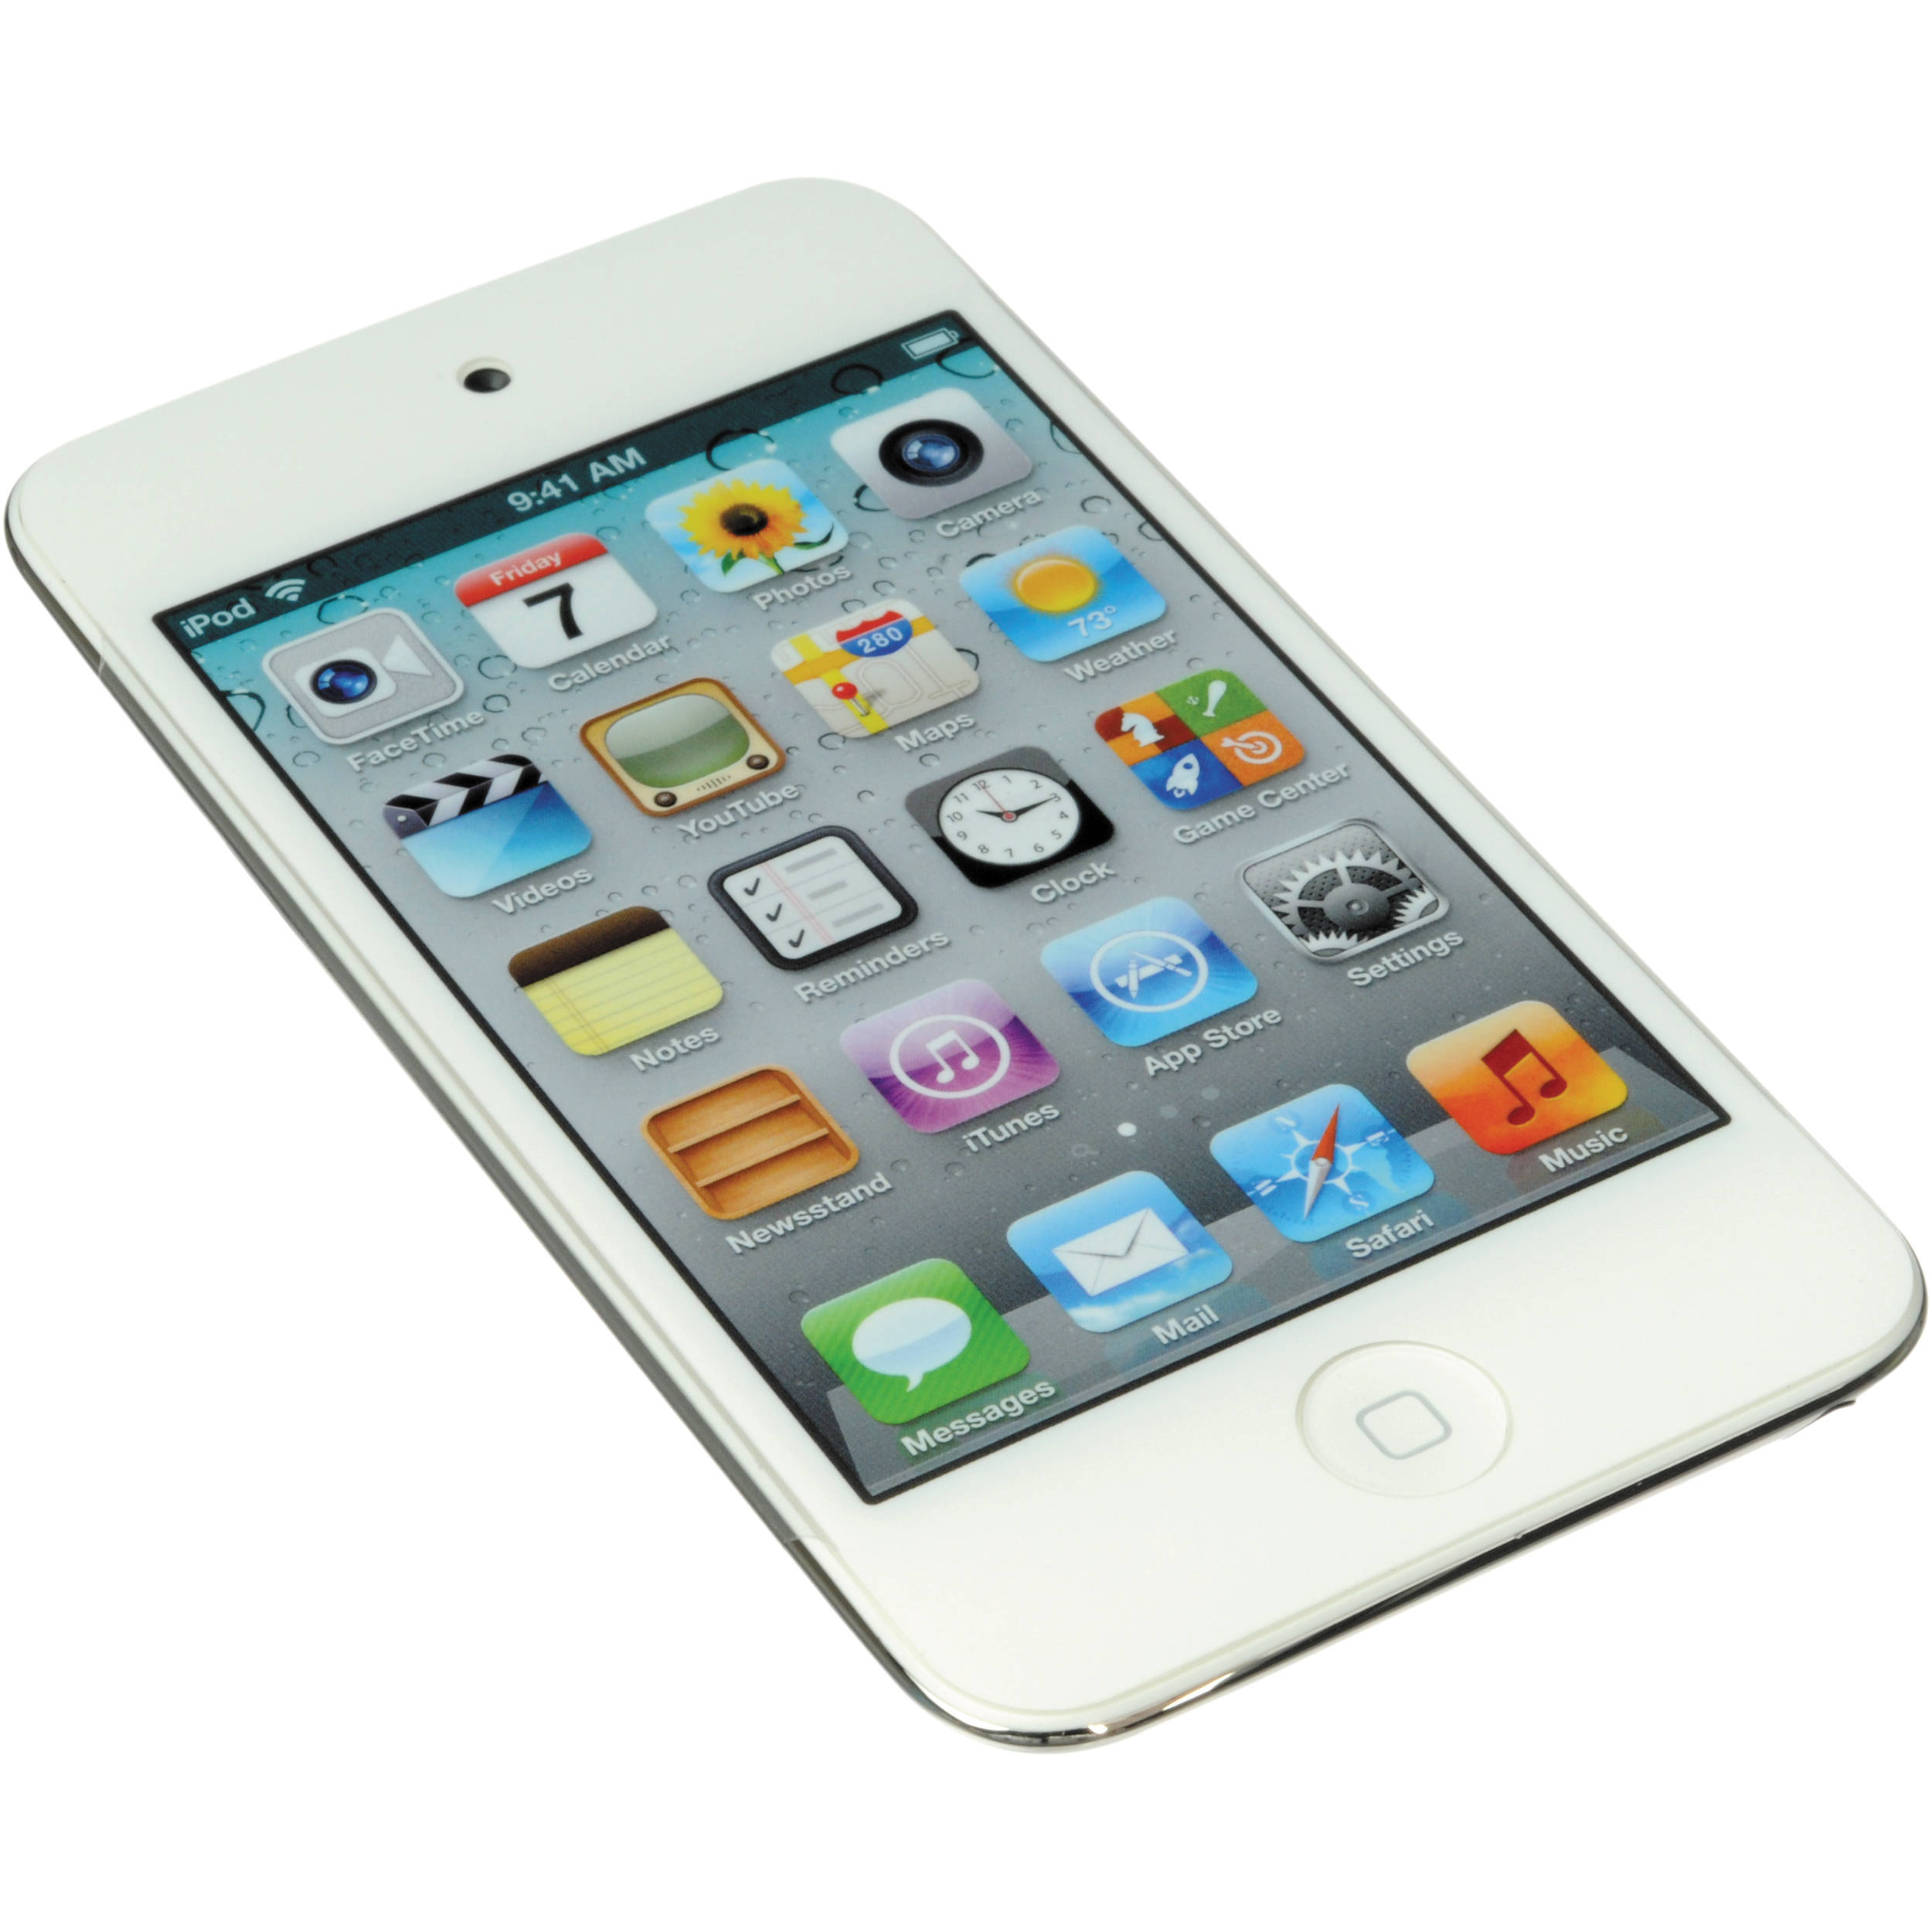 apple 16gb ipod touch white 4th generation me179ll a b h. Black Bedroom Furniture Sets. Home Design Ideas